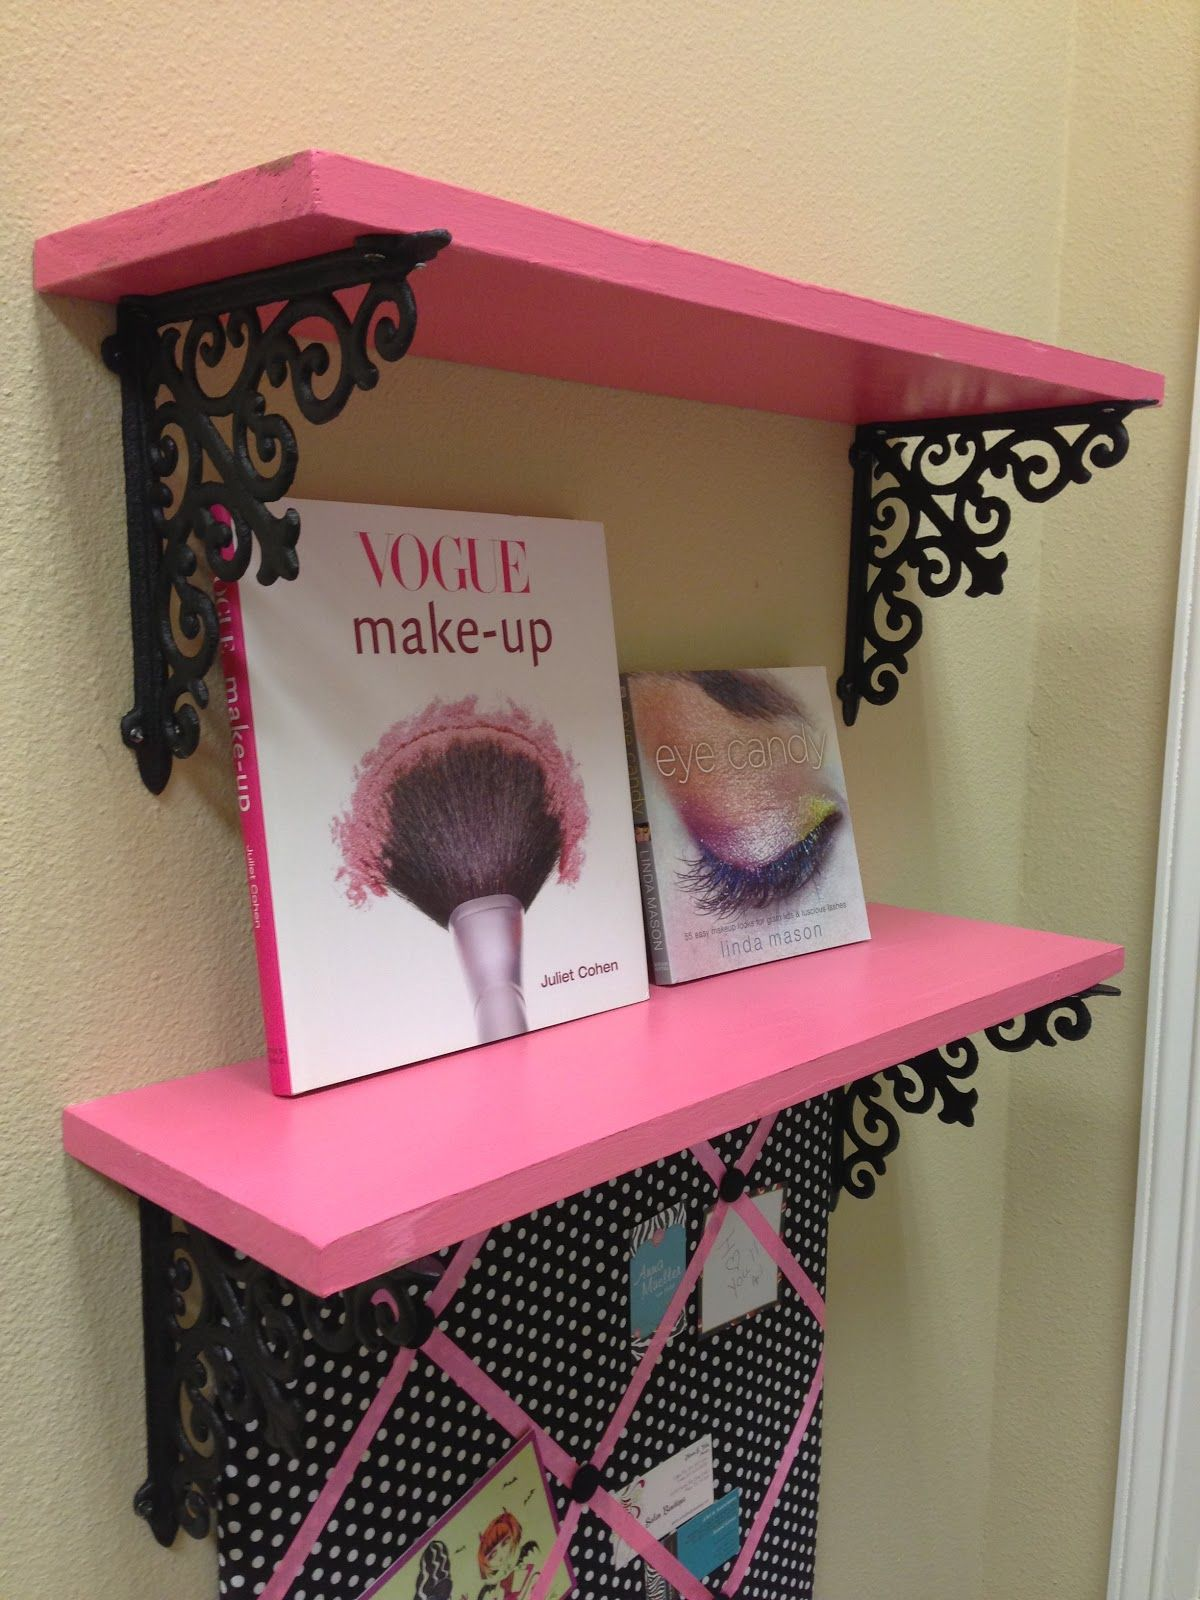 Diy Tutorial Using Hobby Lobby Brackets To Make Cute Shelves In Any Color Paris